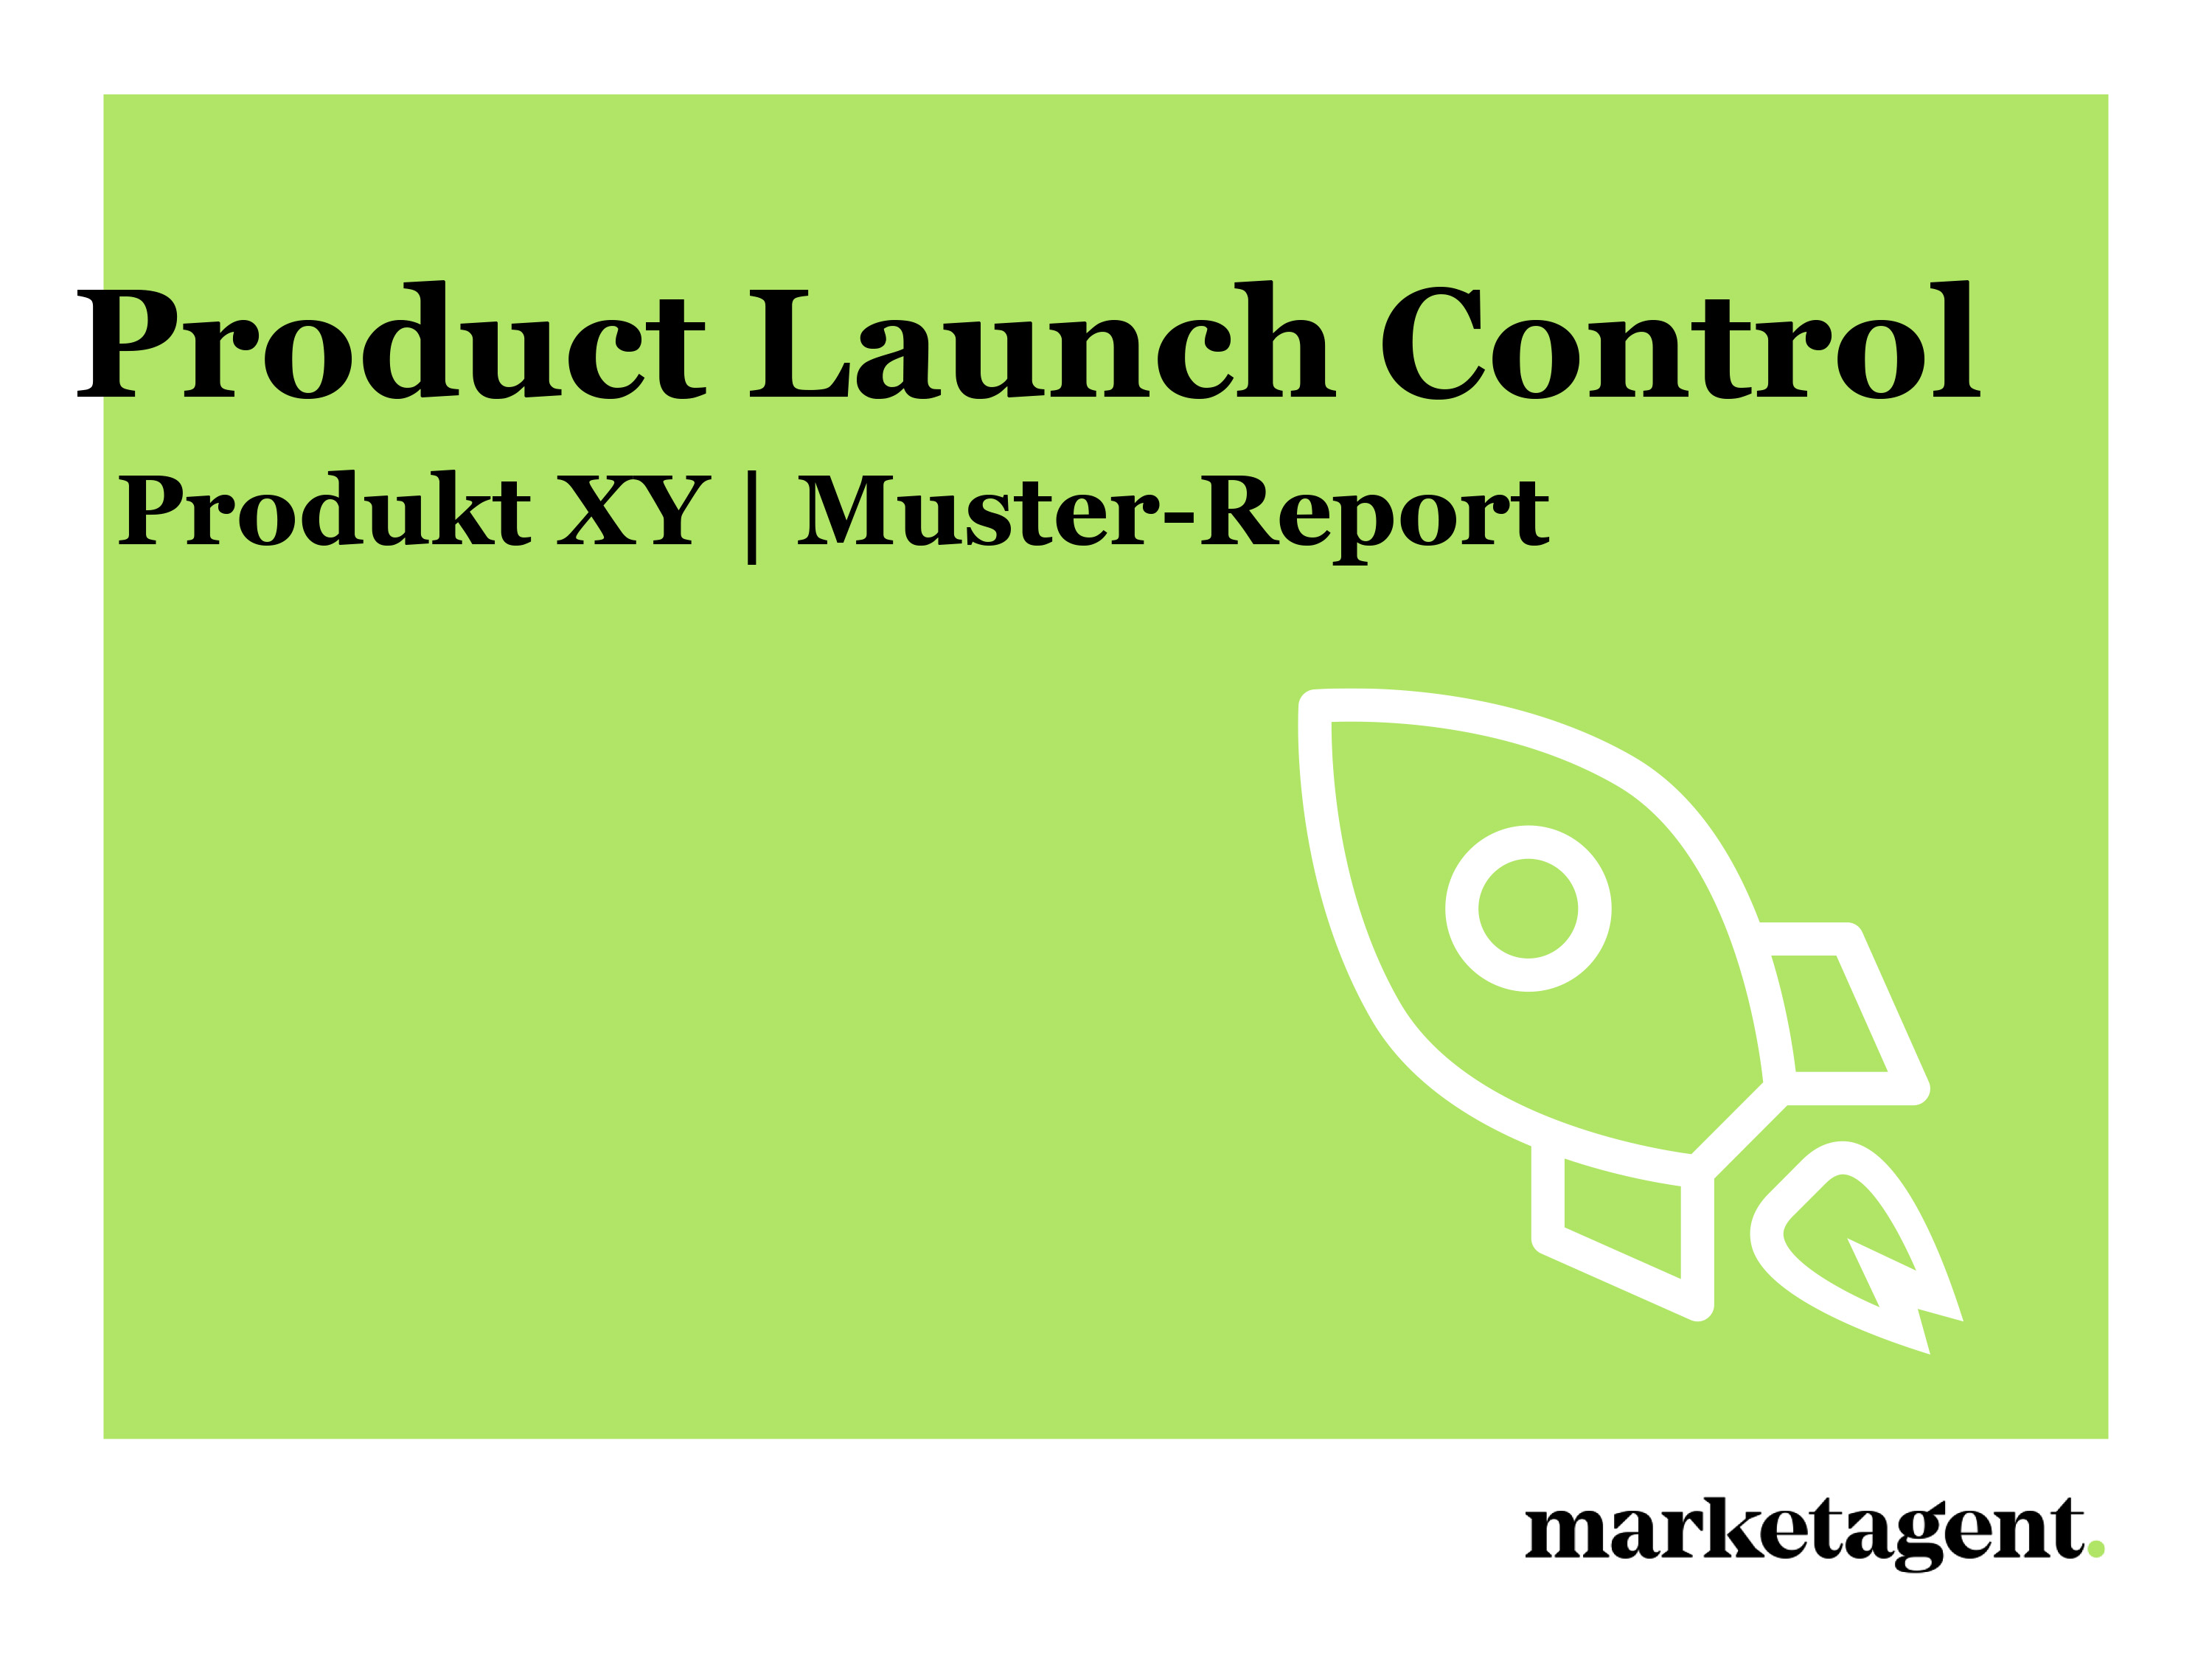 Muster-Report Product Launch Control